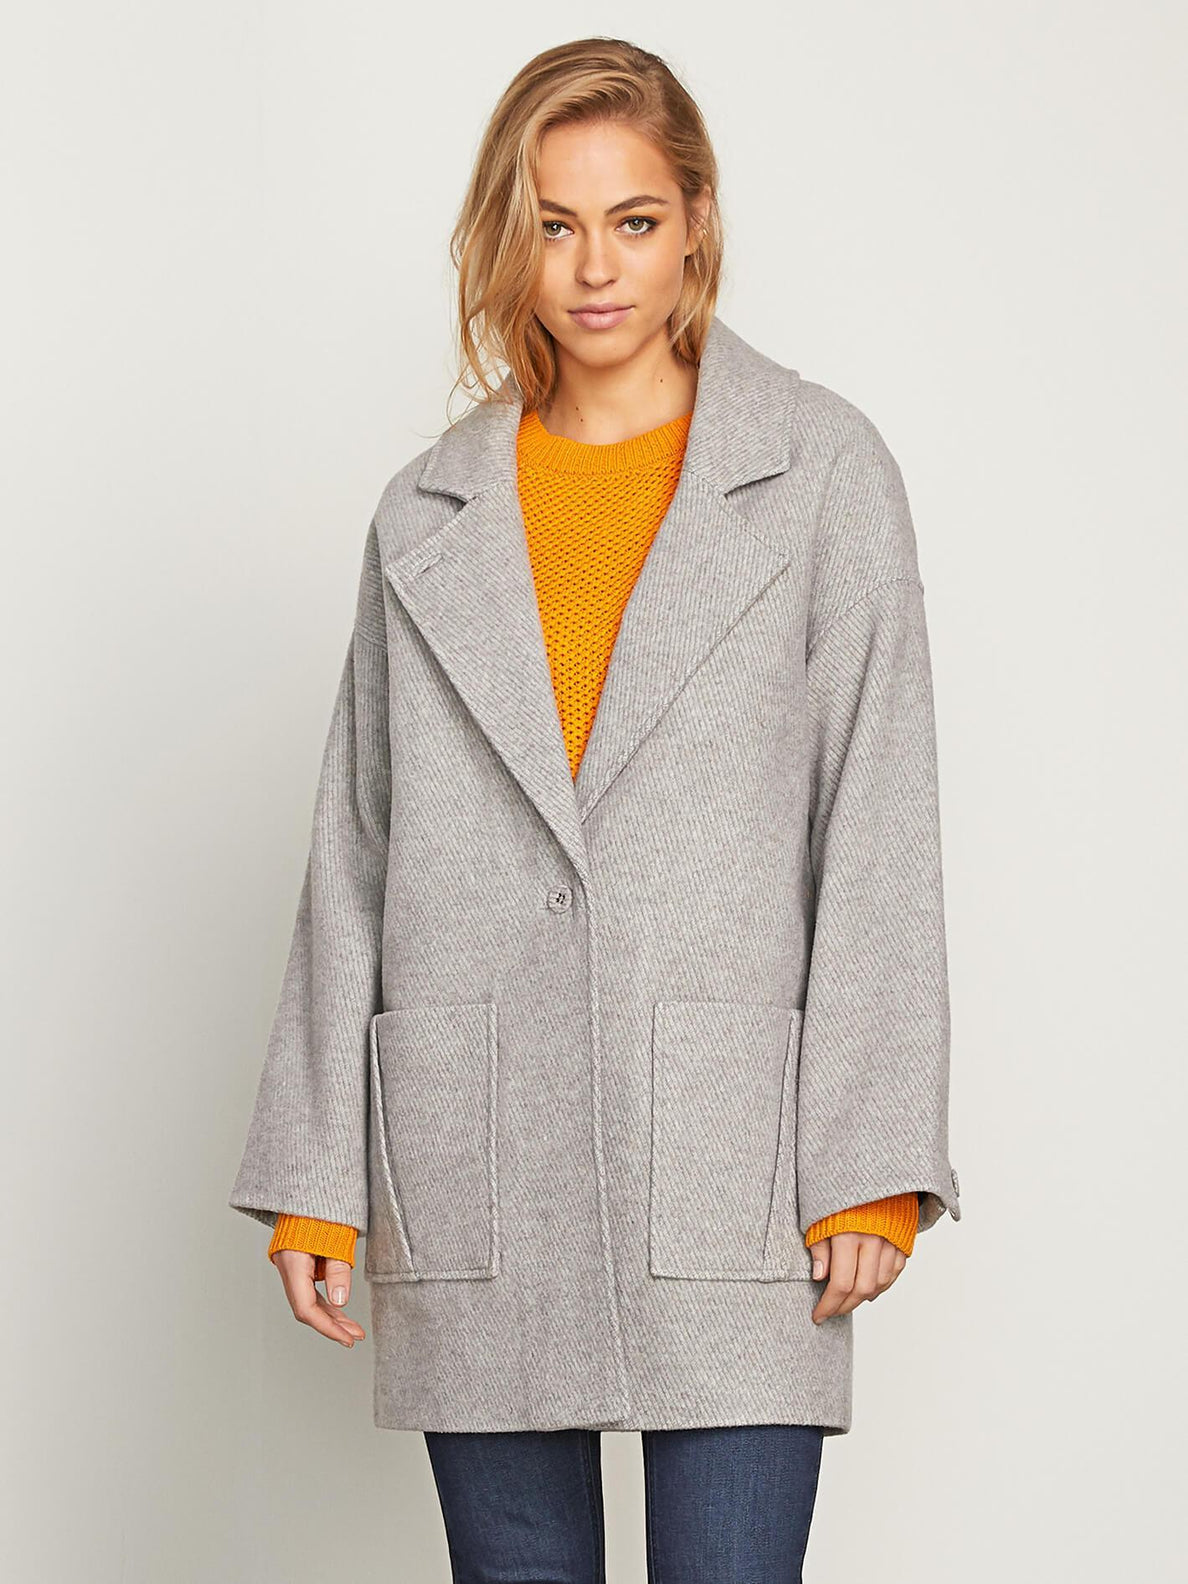 Volcoon Coat Jacke - Heather Grey